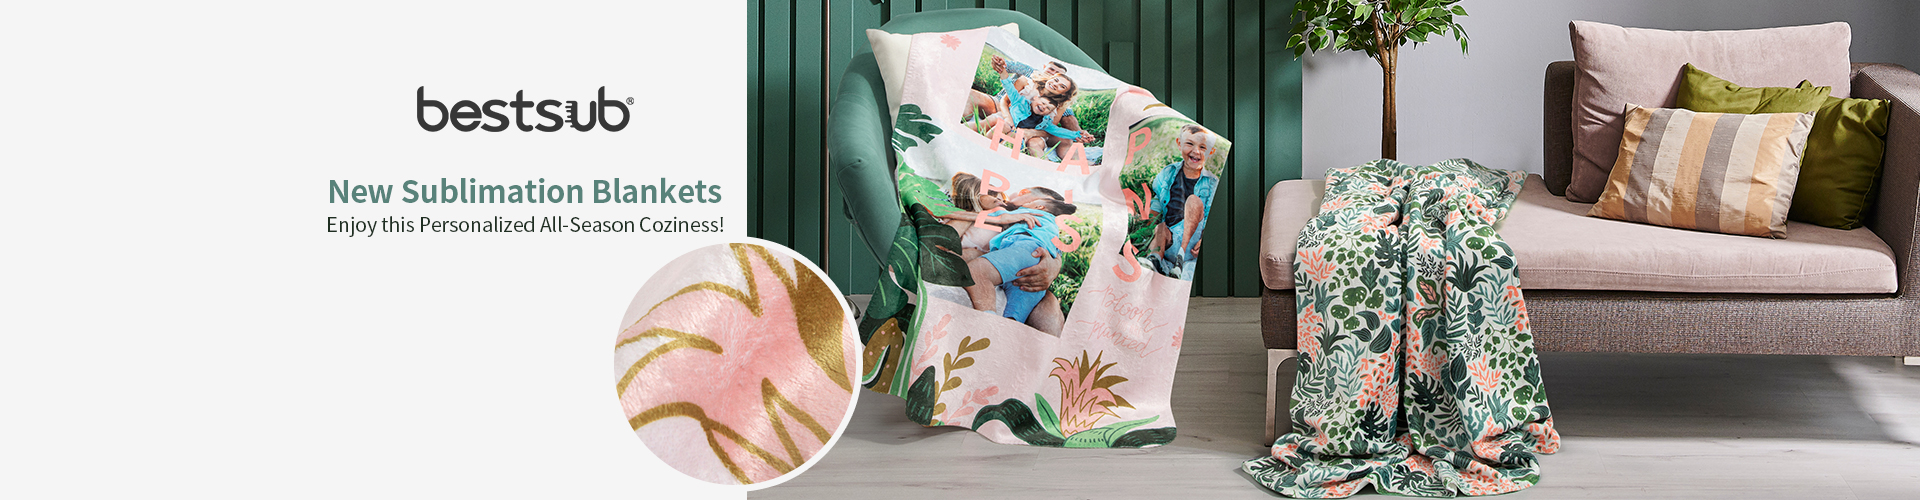 2021-03-03_New_Sublimation_Blankets_new_web